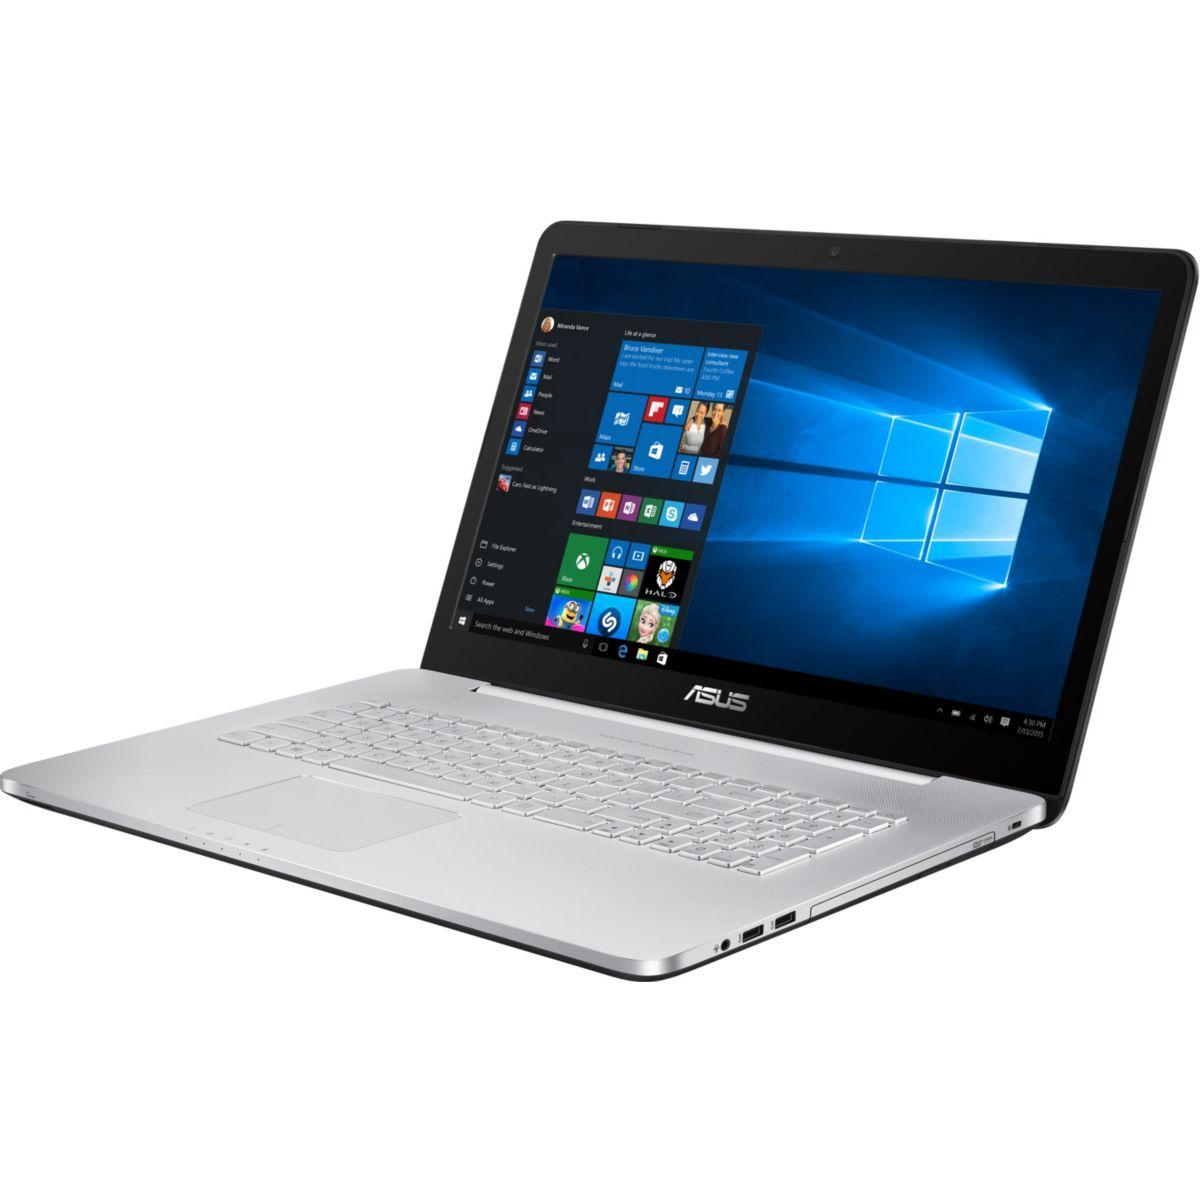 Portable asus n752vx-gb300t - 5 % de remise : code pc5 (photo)